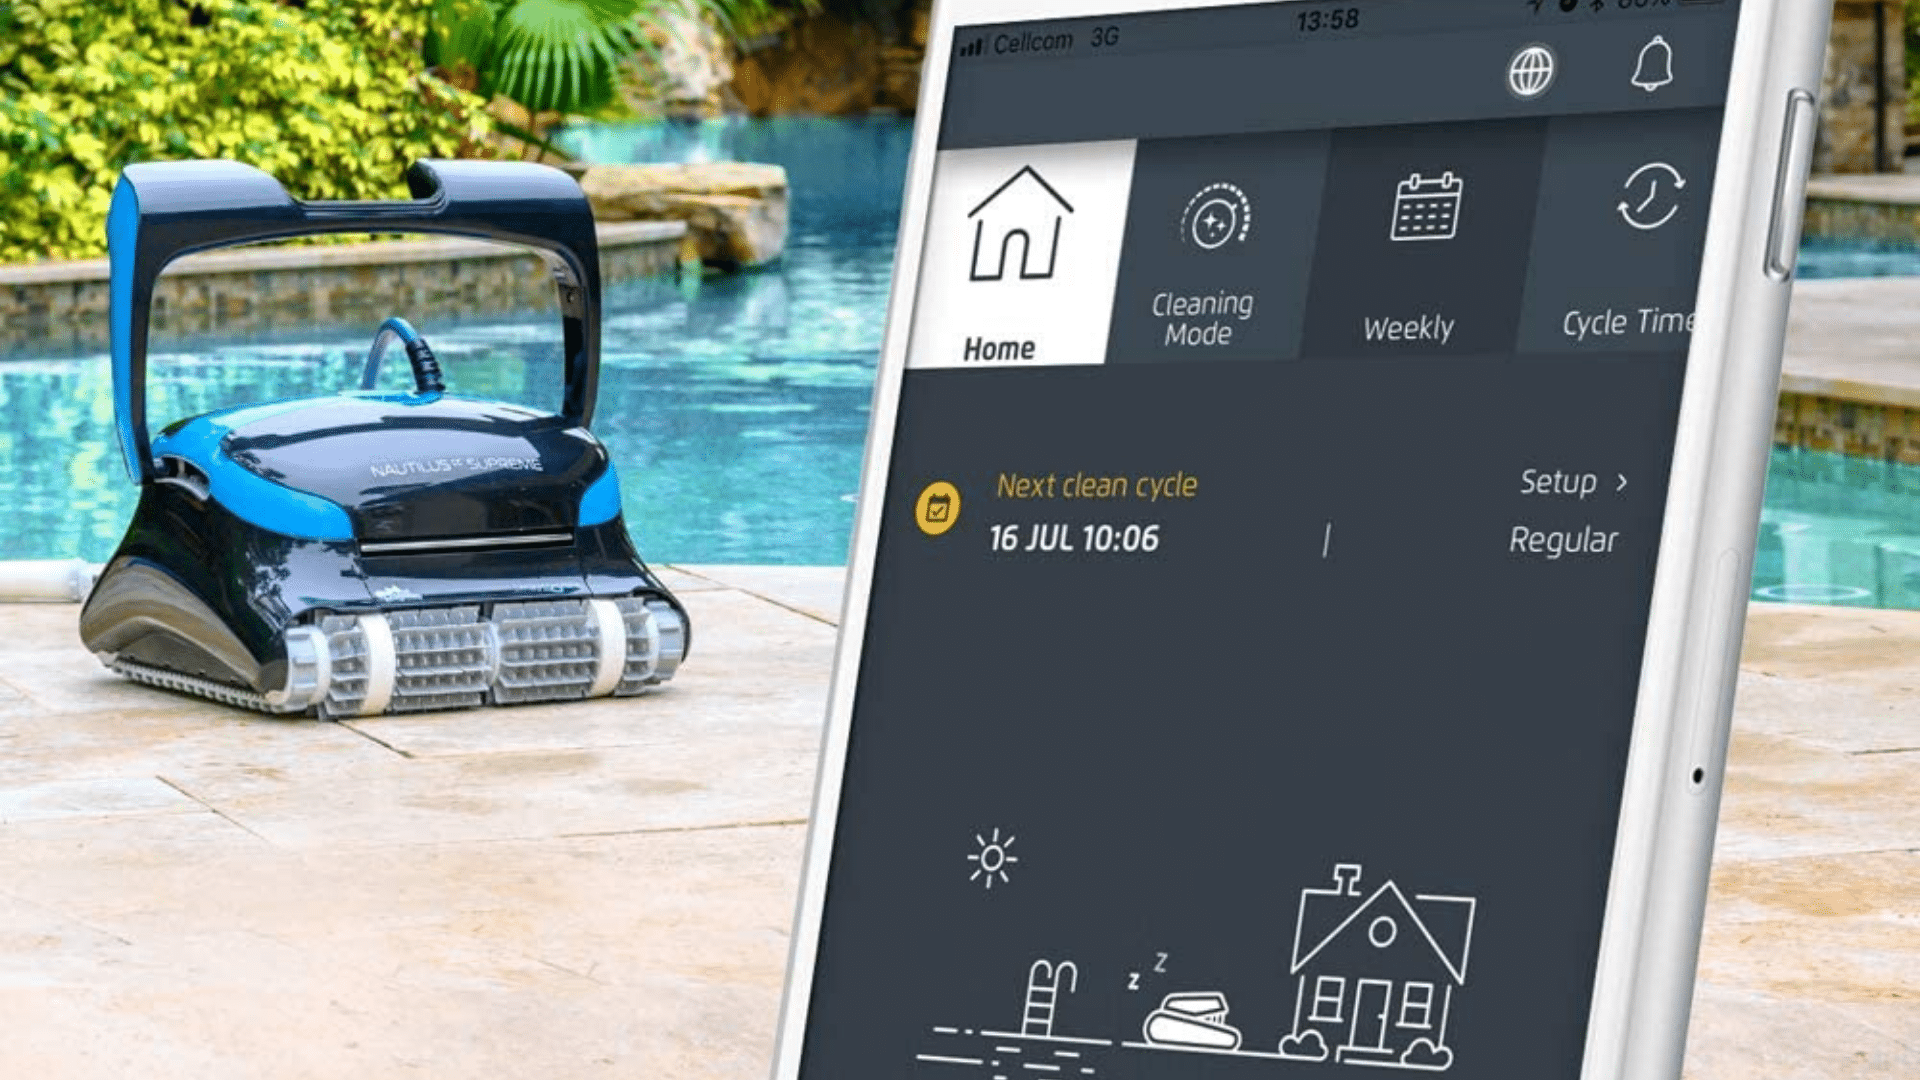 image of DOLPHIN Nautilus CC Supreme Automatic Robotic Pool Cleaner Smart capabilities on mobile